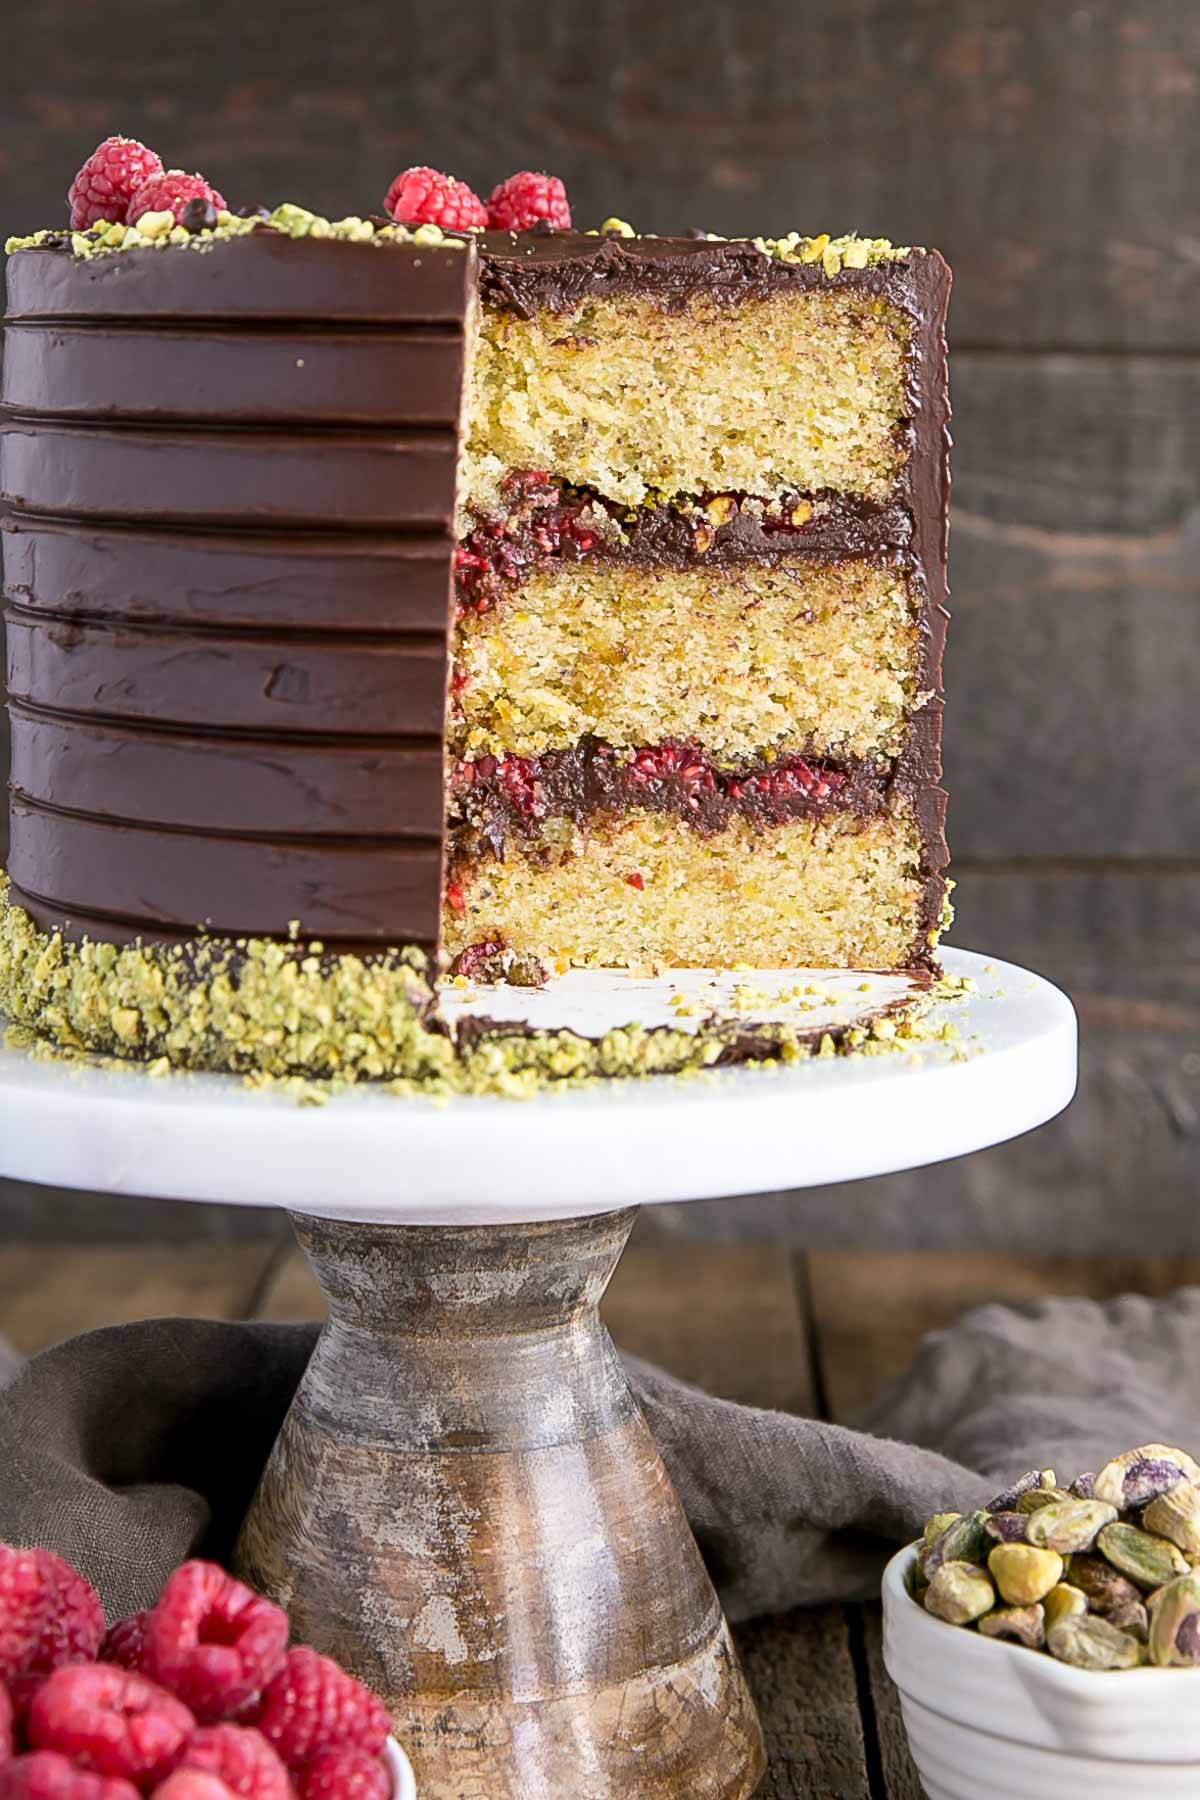 Pistachio cake layers with dark chocolate ganache and fresh raspberries.